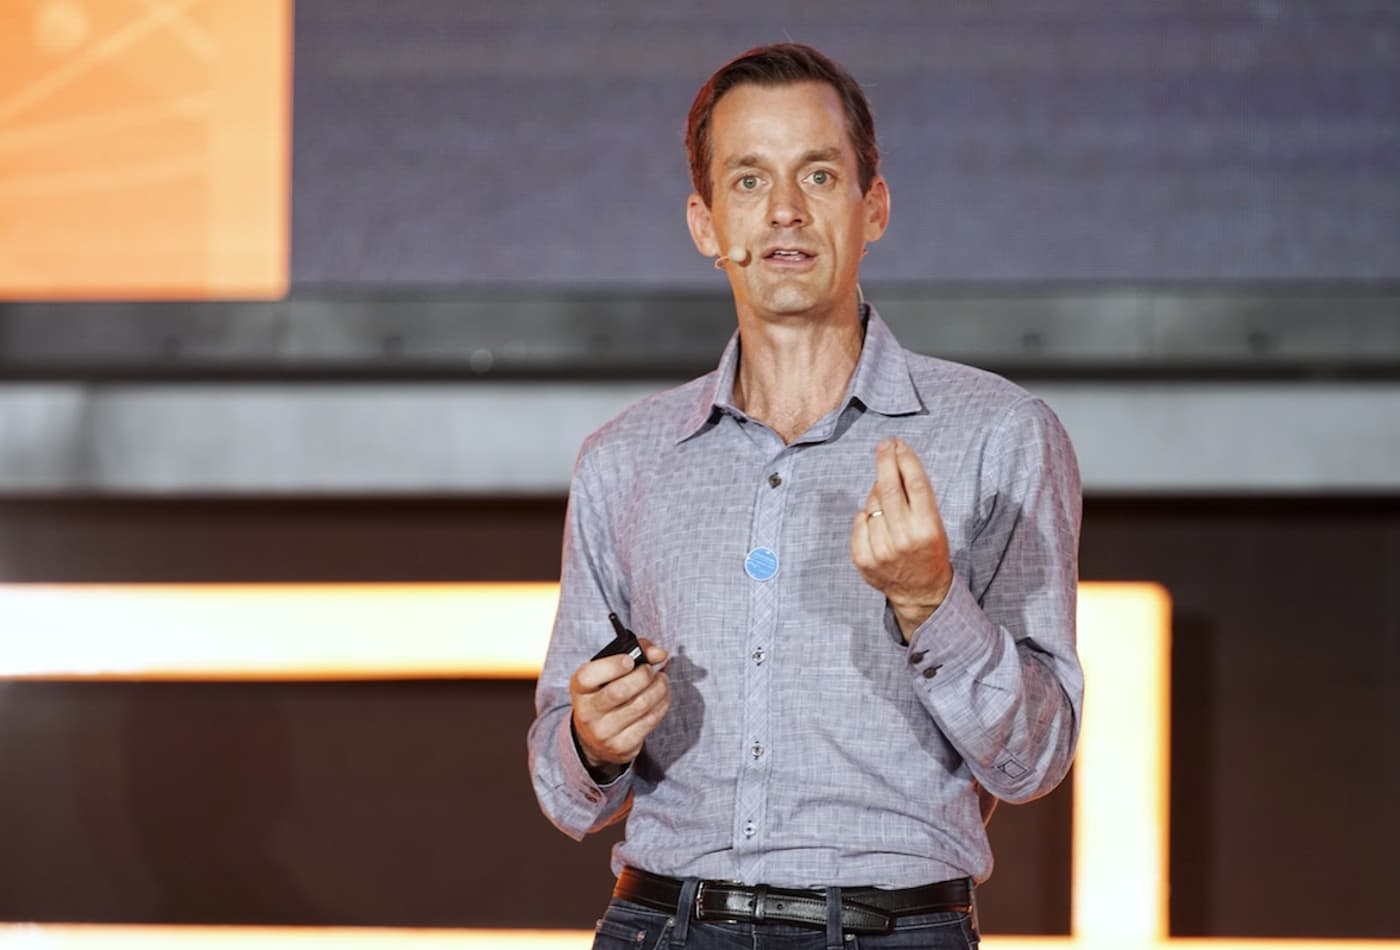 Google AI head urges college students to choose work that solves big societal problems